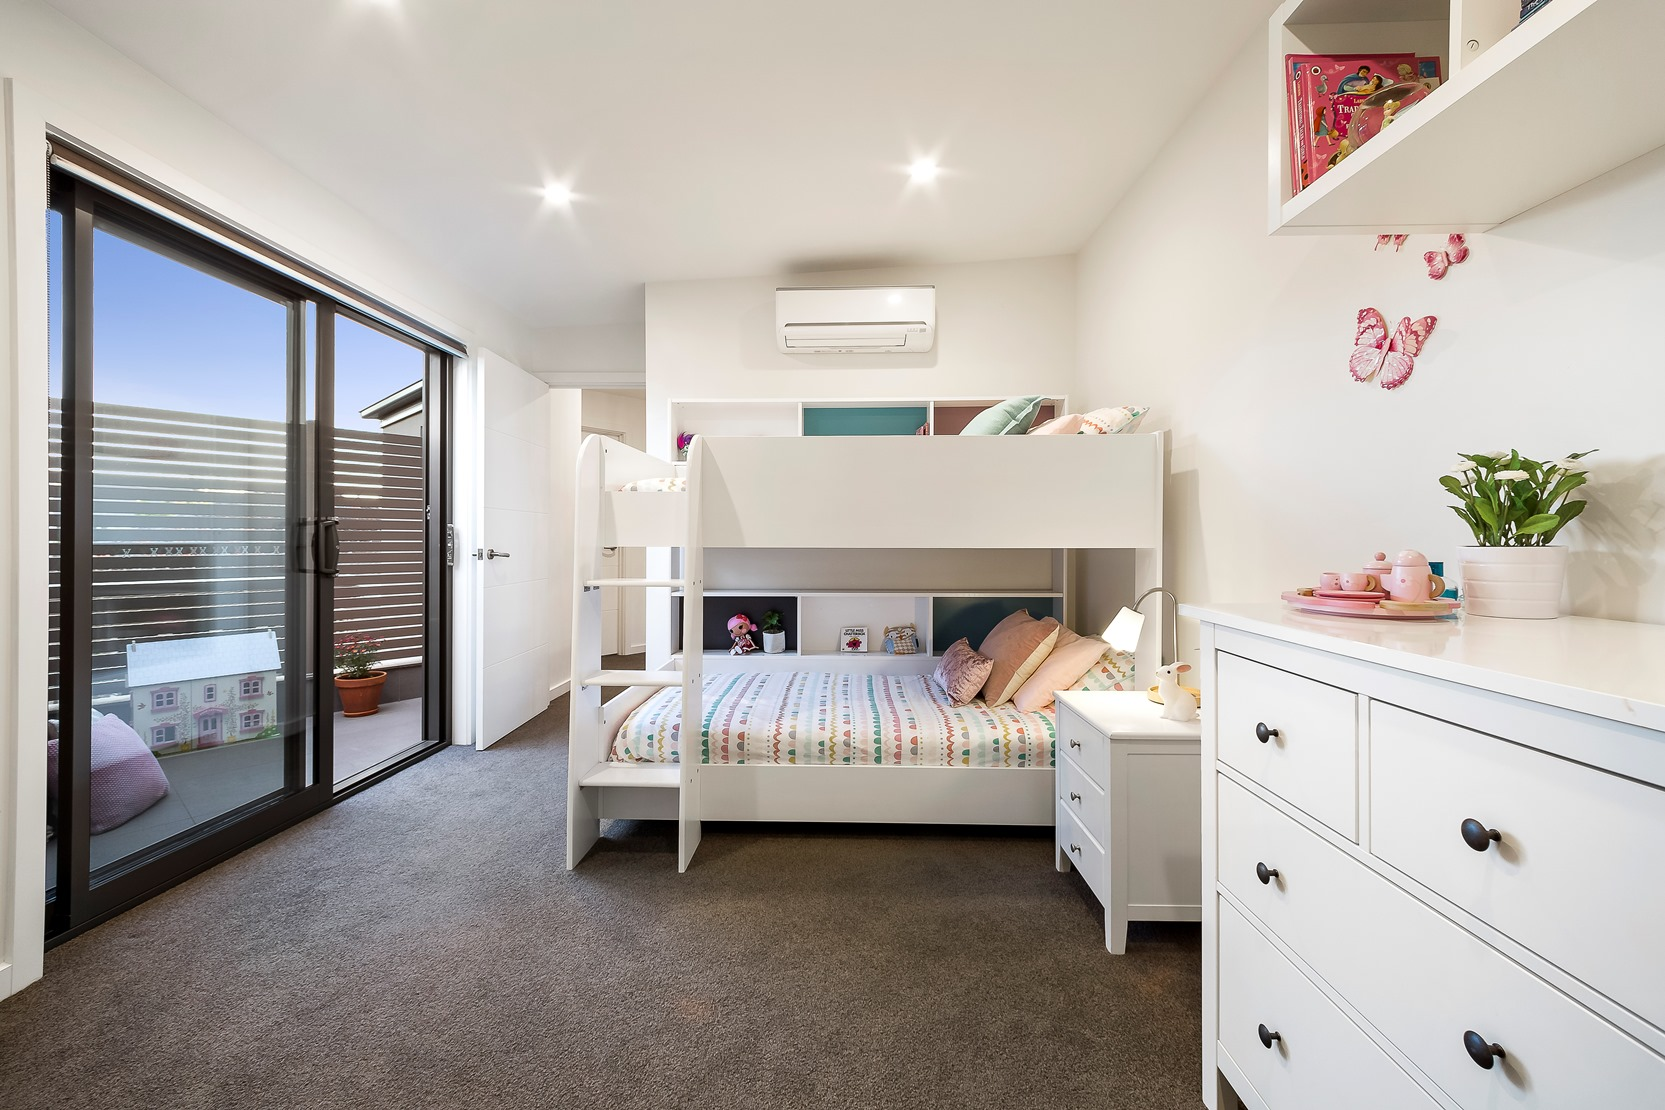 Kew House Design Small Bedroom Bunk Bed White Patio